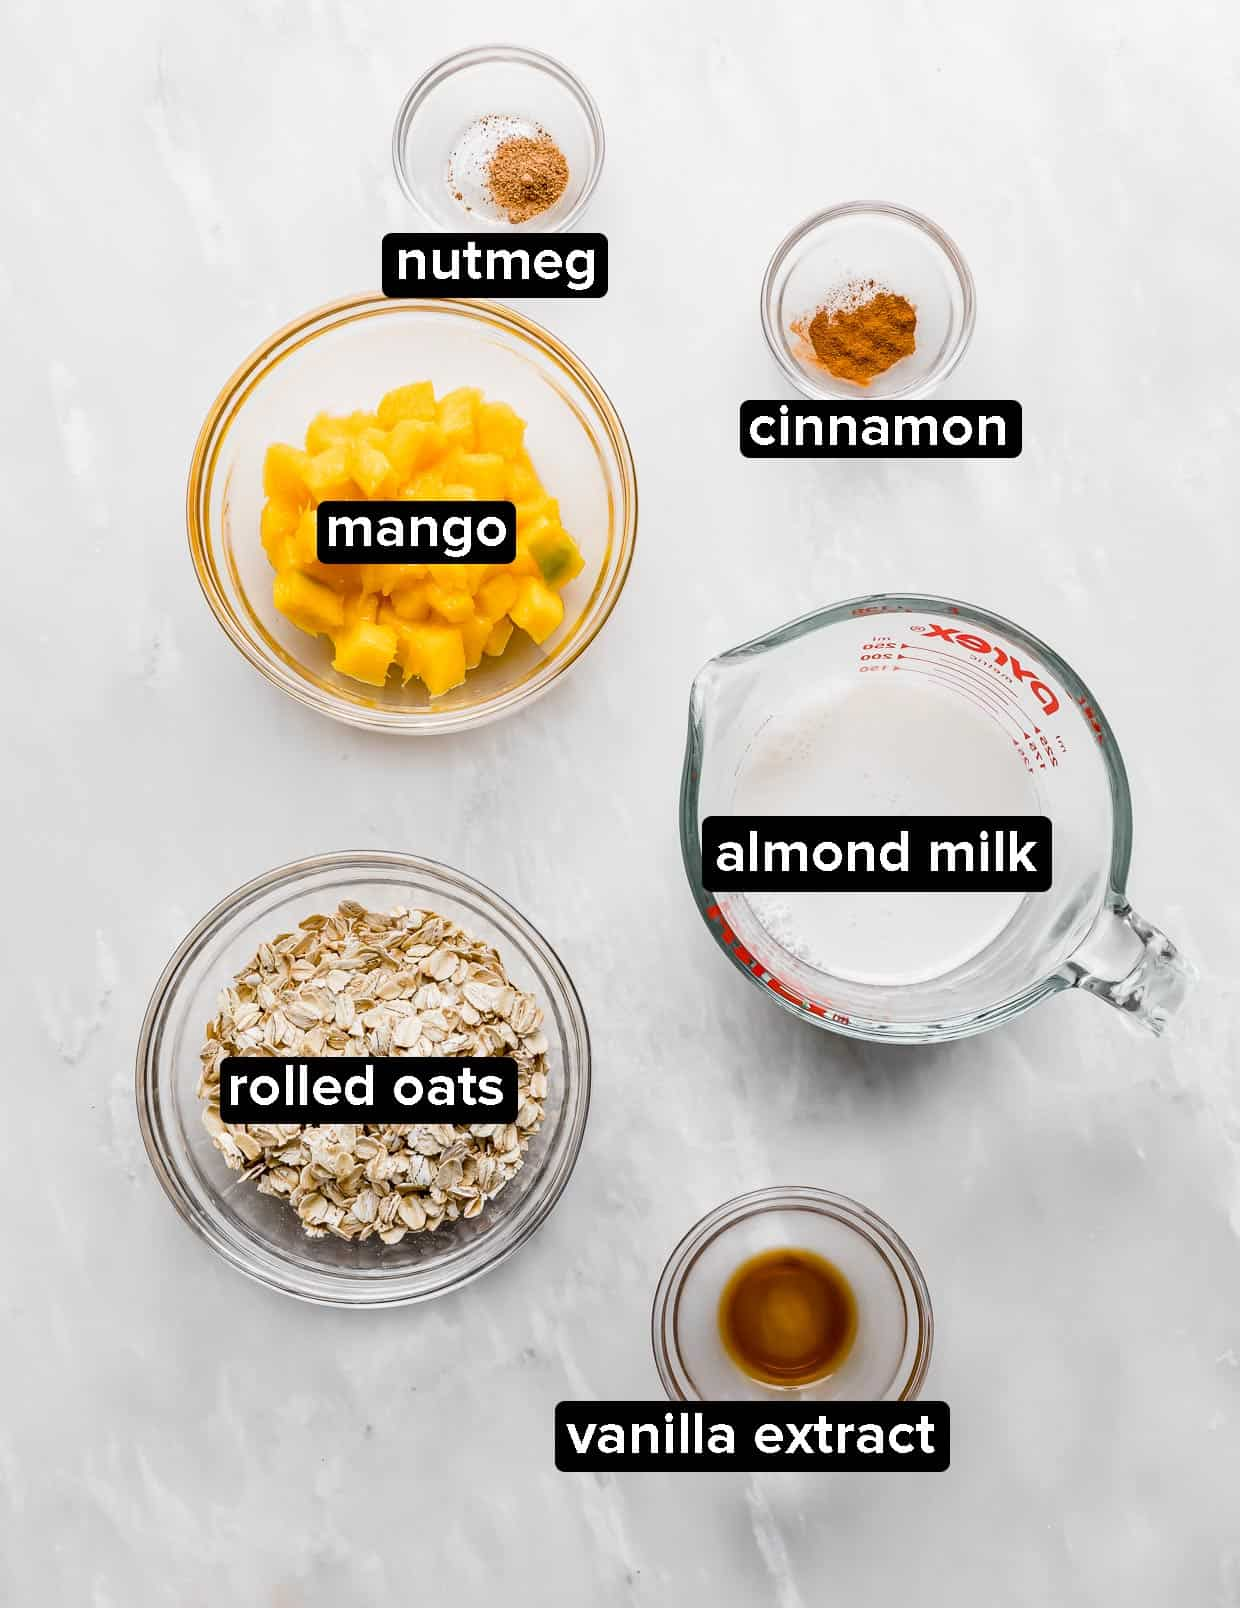 Ingredients used to make mango overnight oats, on a white background.